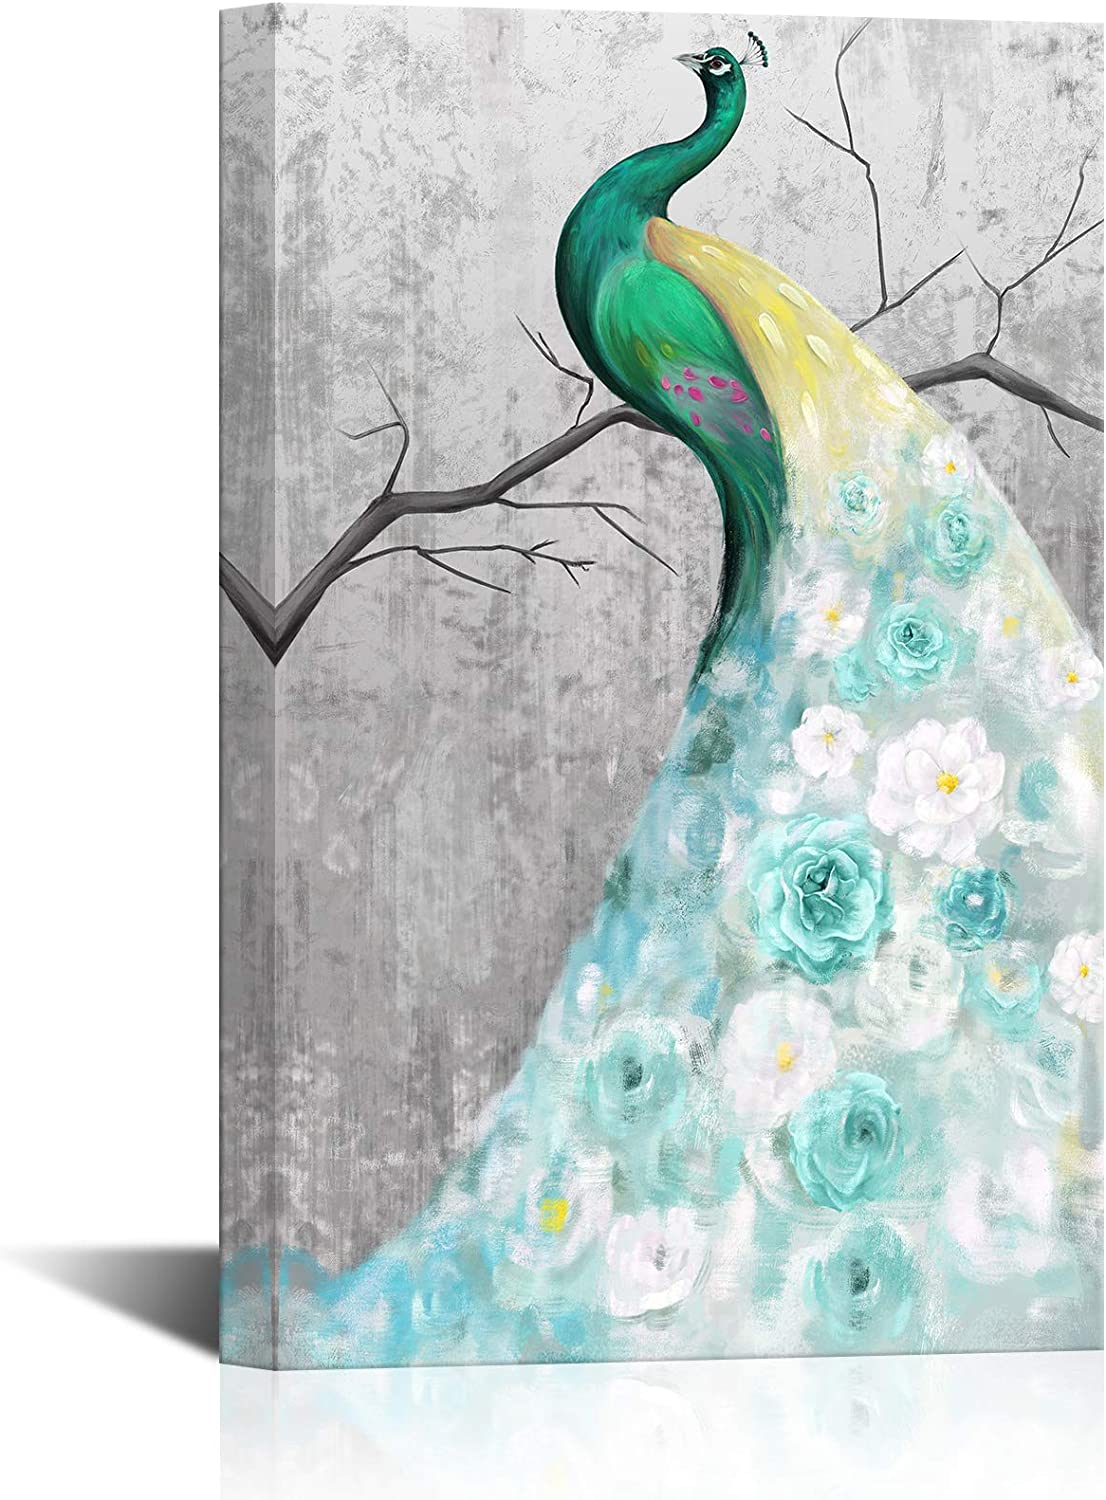 LoveHouse Peacock Animal Picture Art Prints Green Blue White Peacock Canvas Prints Artwork for Home Office Bedroom Living Room Framed and Stretched Animal Wall Decor Ready To Hang 16 x 24 Inch